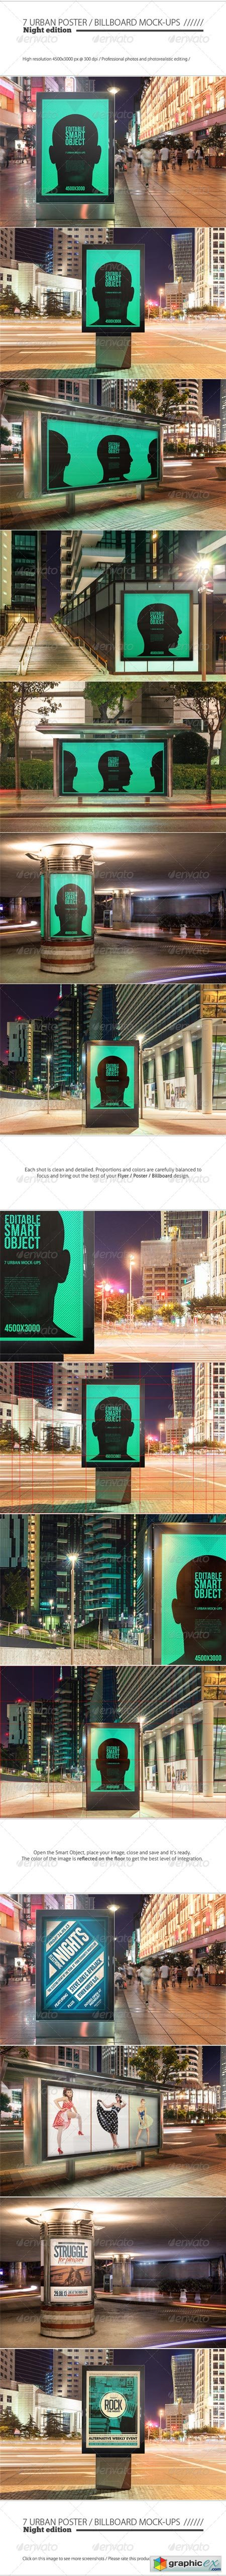 Urban Poster Billboard Mock-ups - Night Edition 8696238